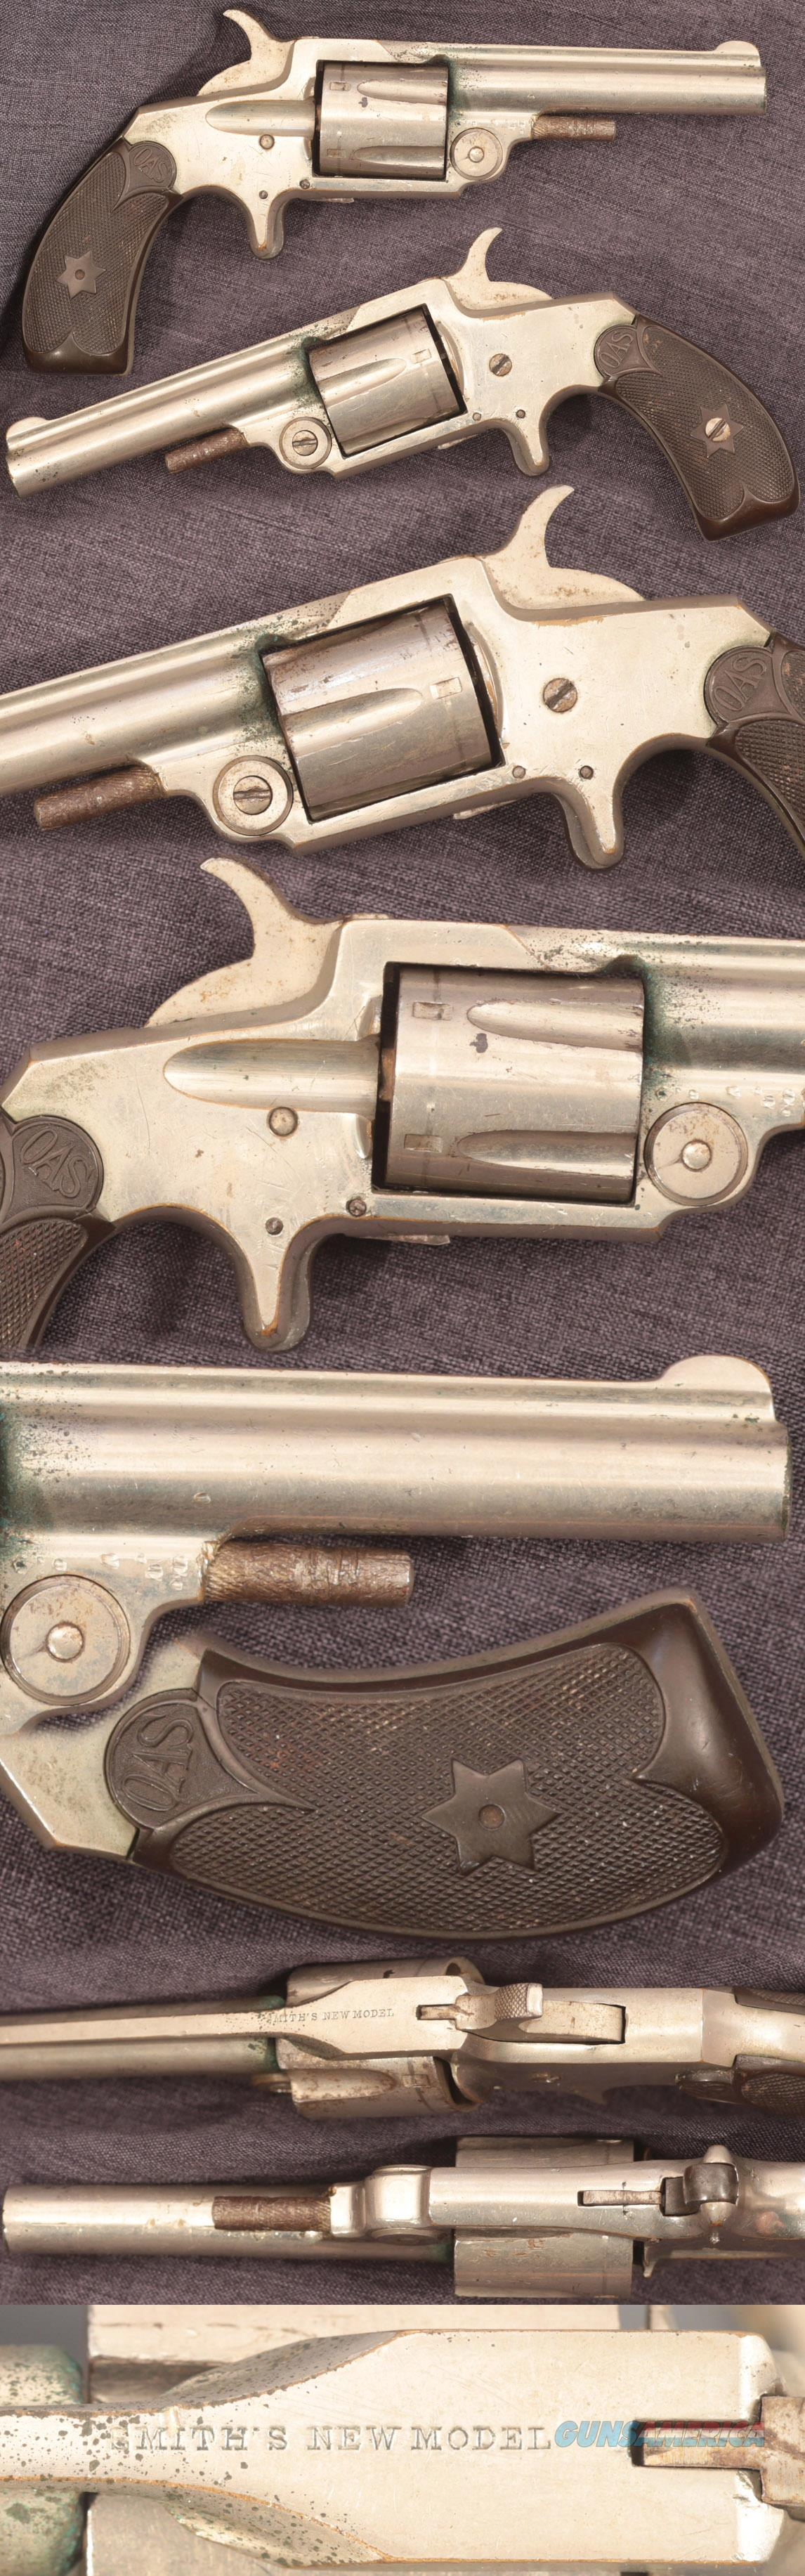 Smith's New Model 32 rimfire spur trigger revolver  Guns > Pistols > Smith & Wesson Revolvers > Pre-1899